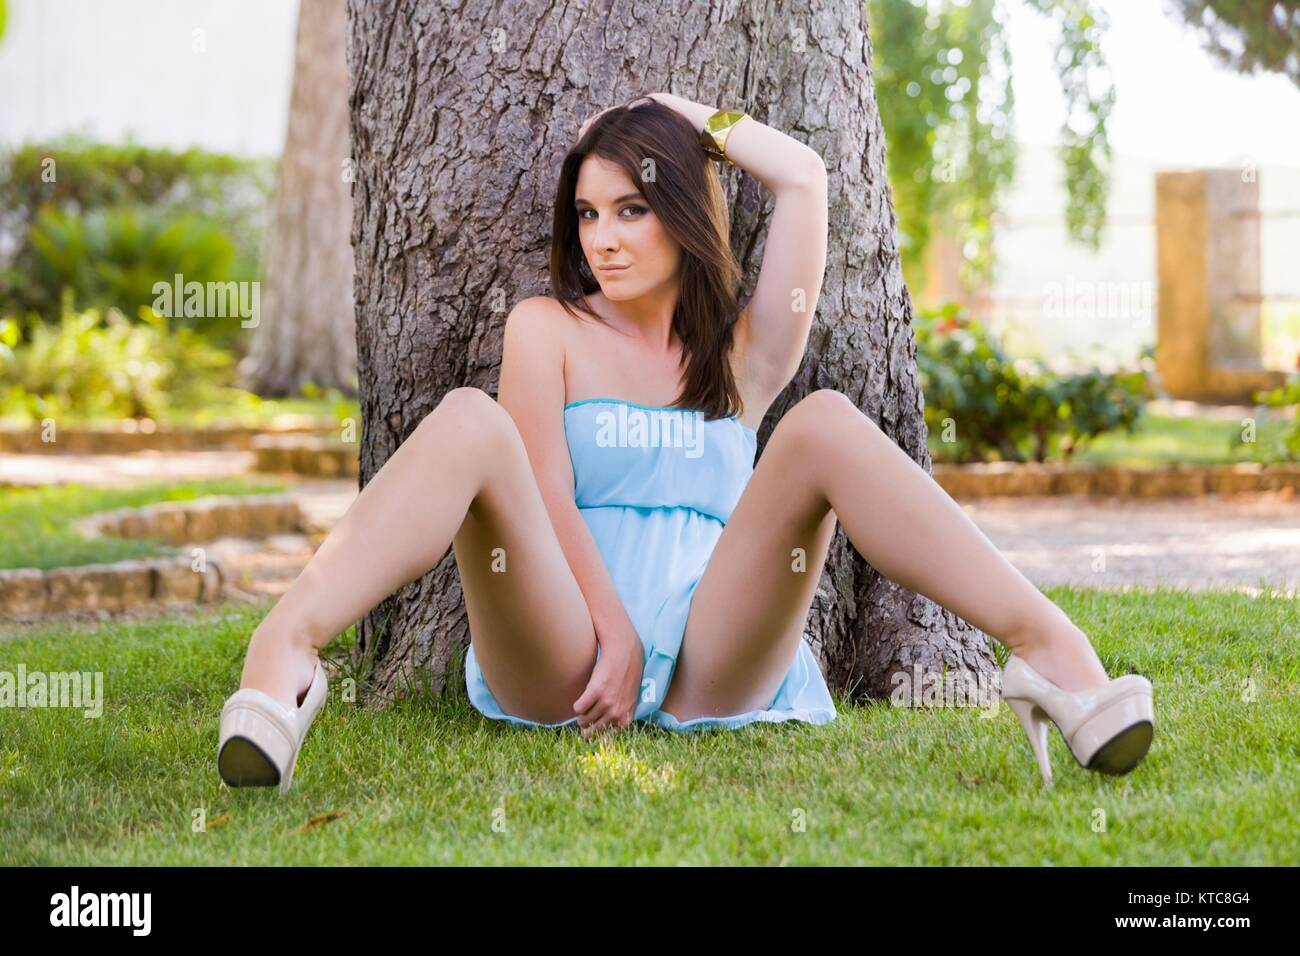 Woman spreading her legs